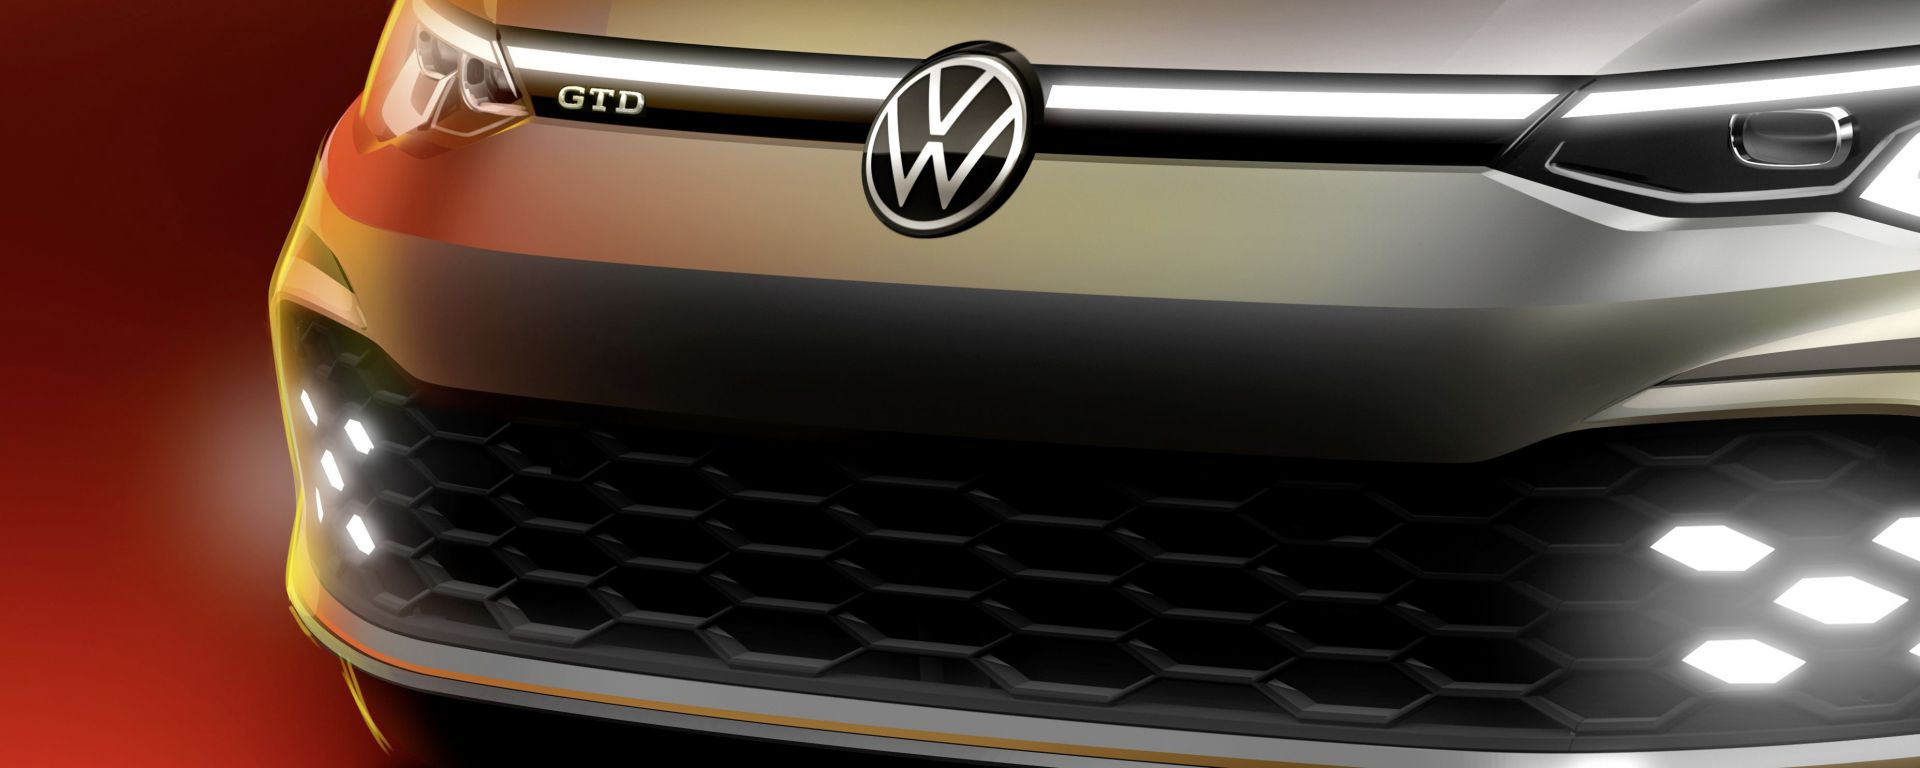 Golf GTD 2020, il teaser del frontale